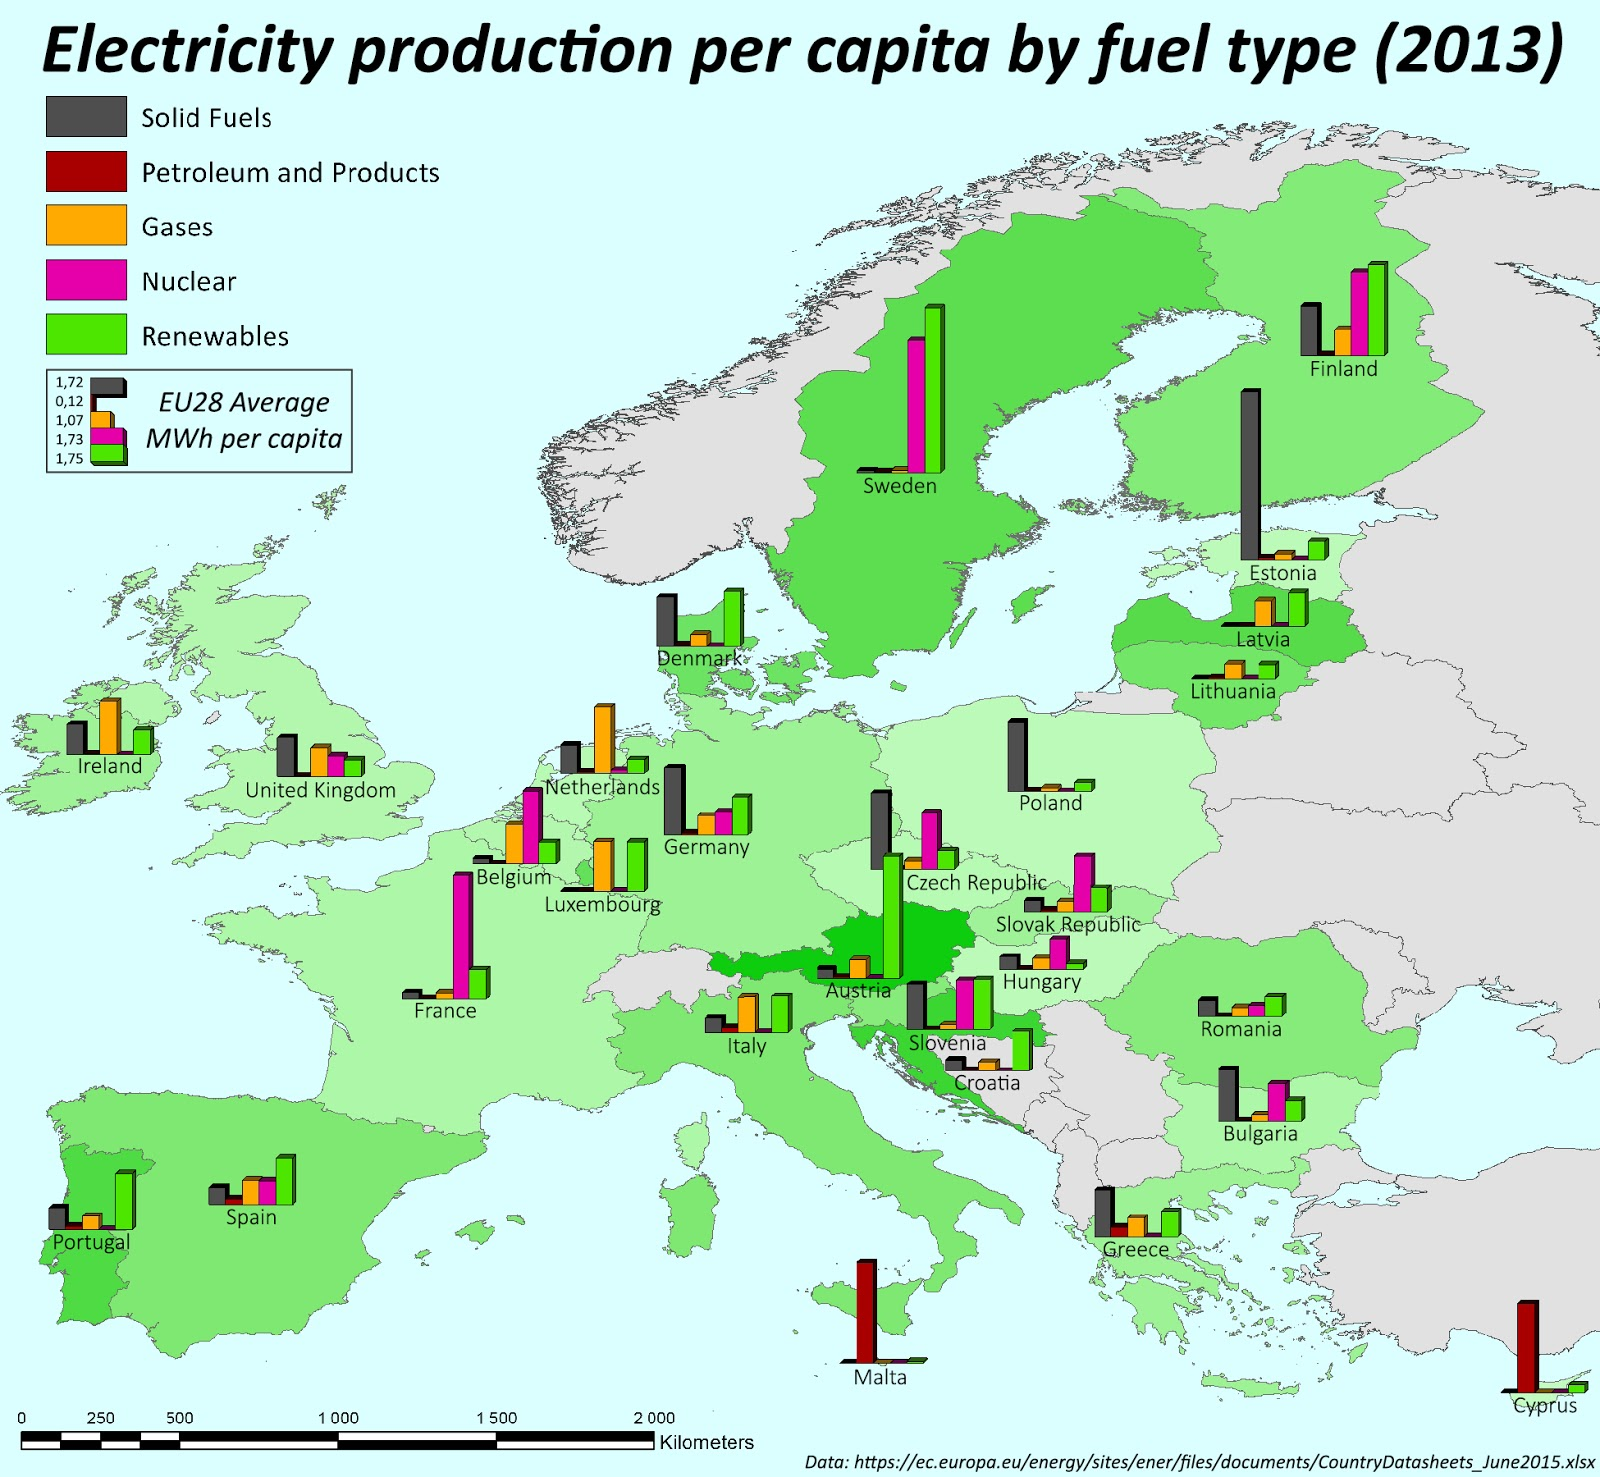 Electricity production per capita by fuel type